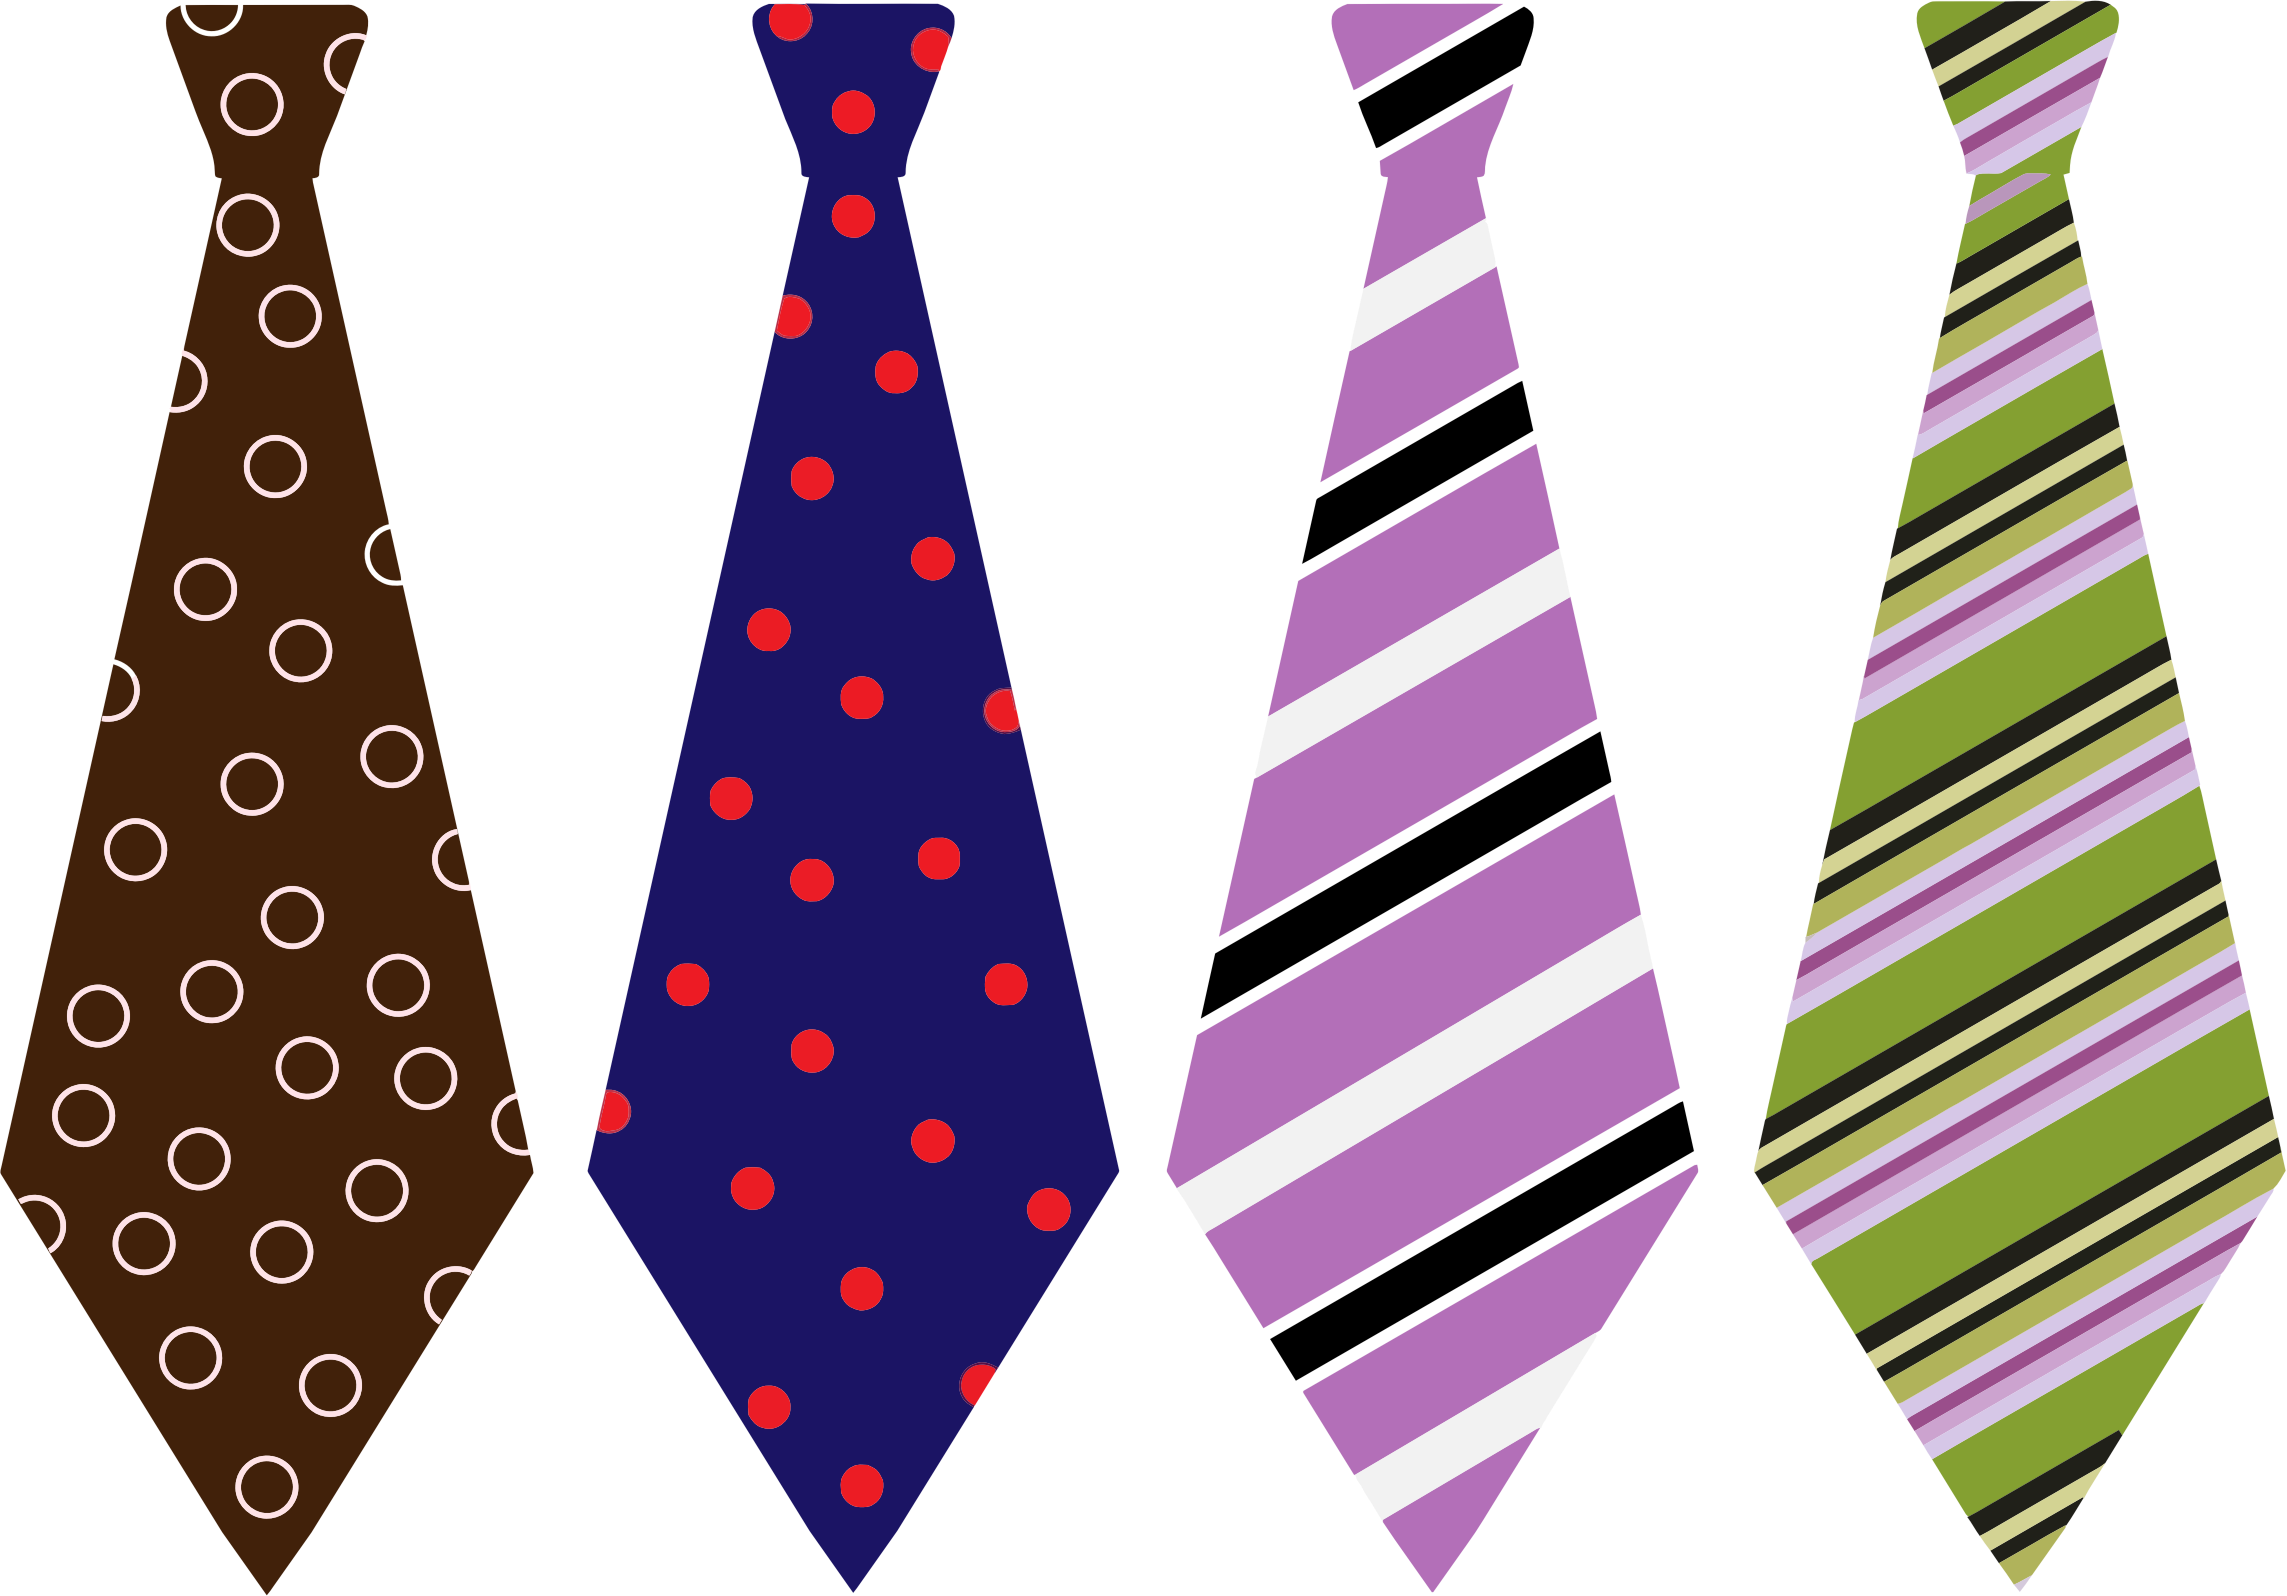 Patterned Mens Ties Png image #42567